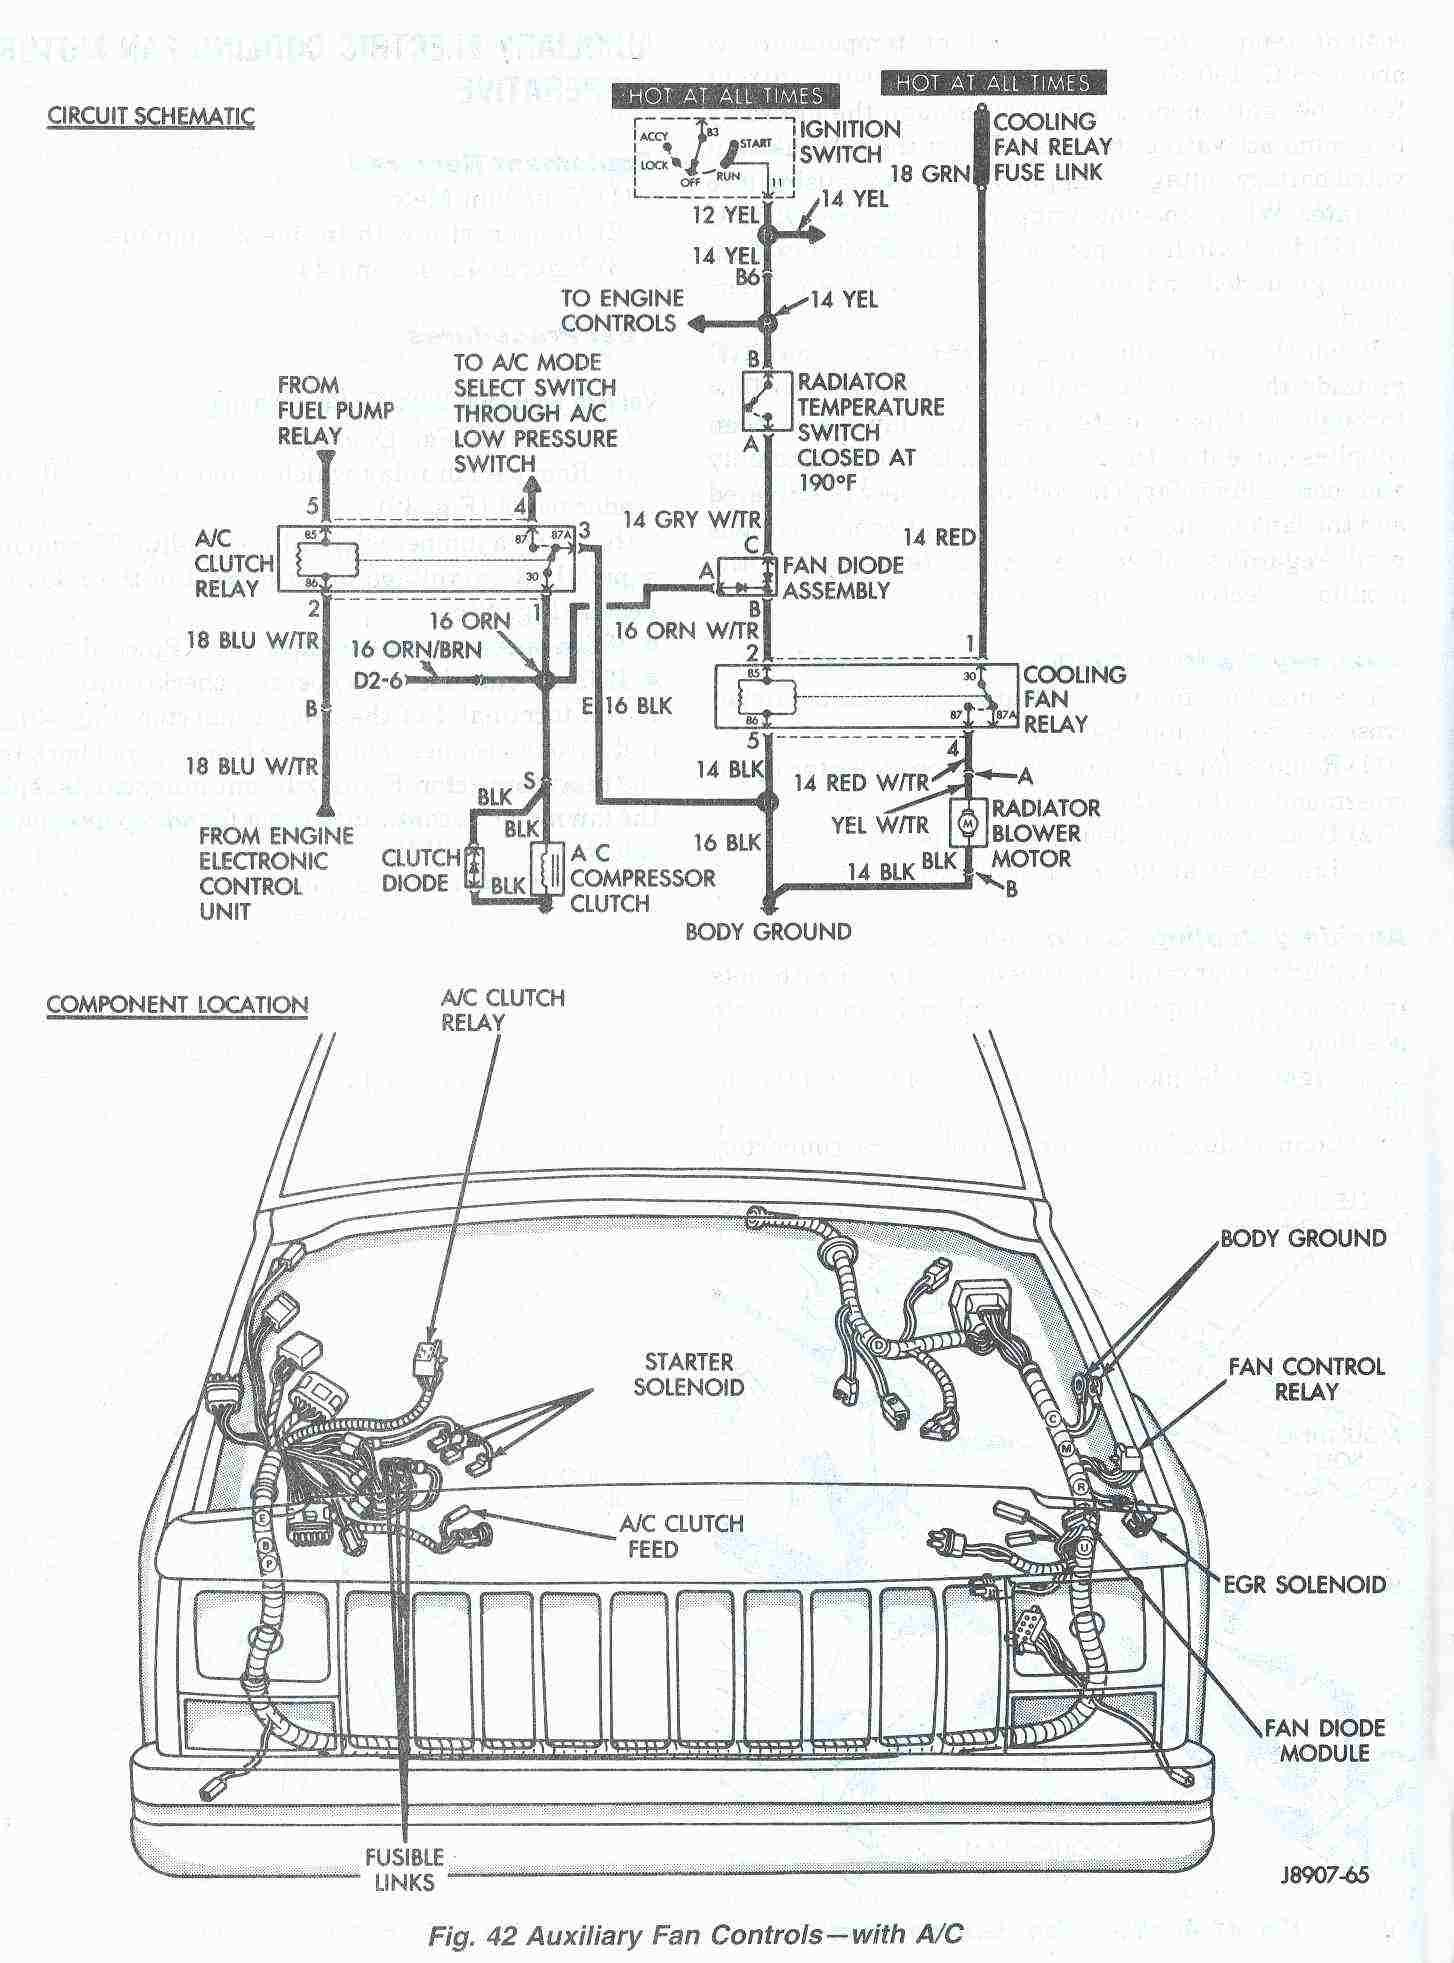 2007 Jeep Grand Cherokee Engine Diagram Wiring Diagram for Ac Unit  thermostat Along with Jeep Cherokee